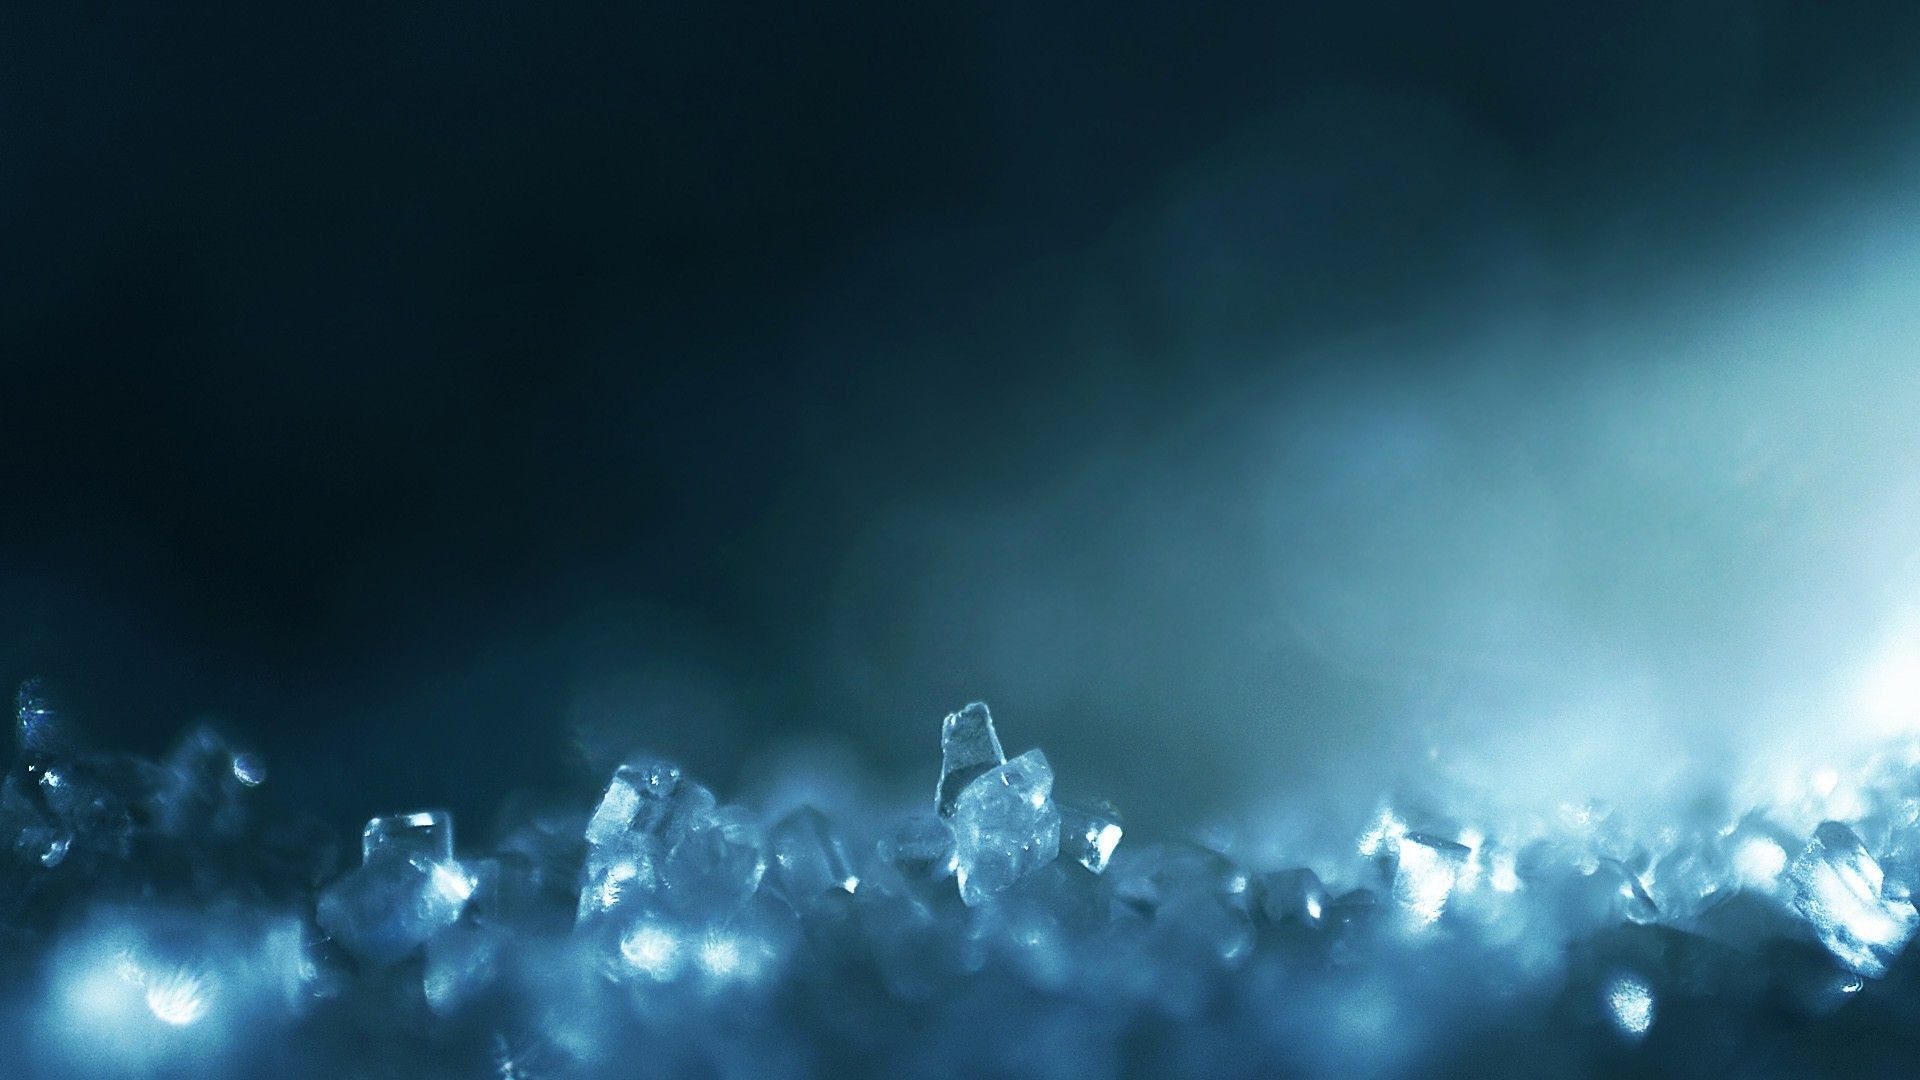 Wallpapers Ice Crystal Wallpapers